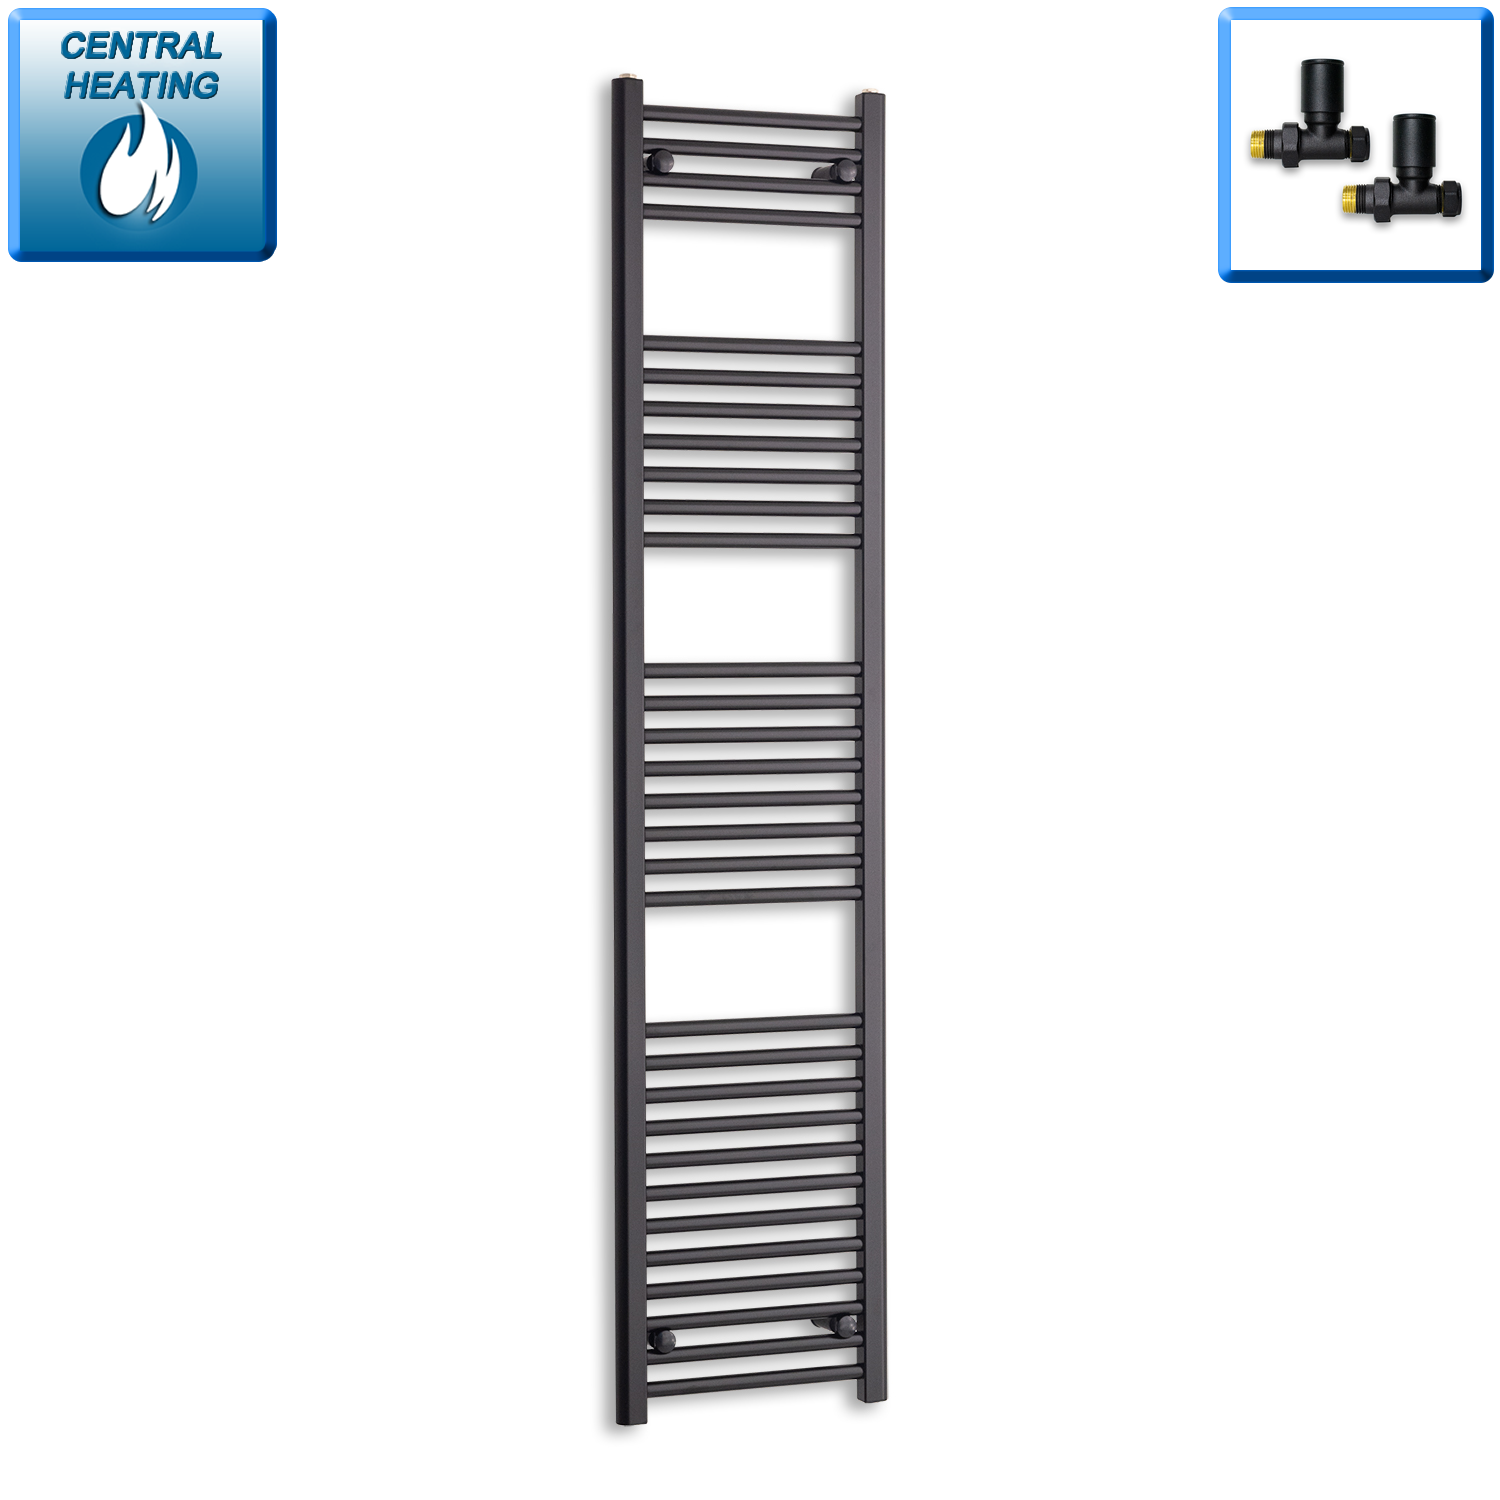 400mm Wide 1800mm High Black Towel Rail Radiator With Straight Valve